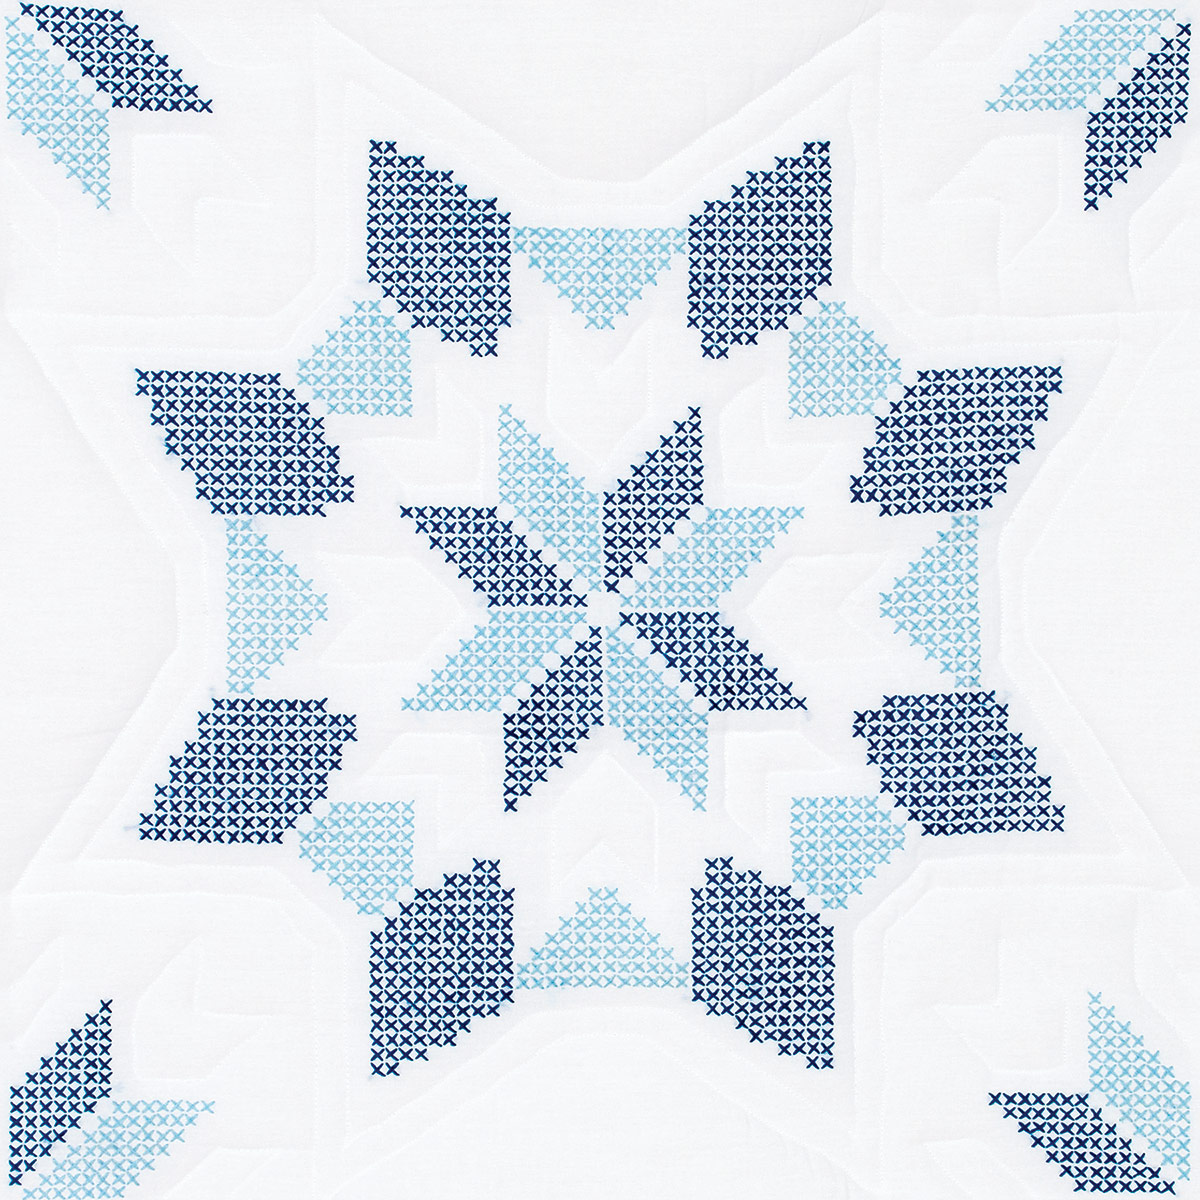 Interlocking XX Western Star 18 Quilt Blocks  Jack